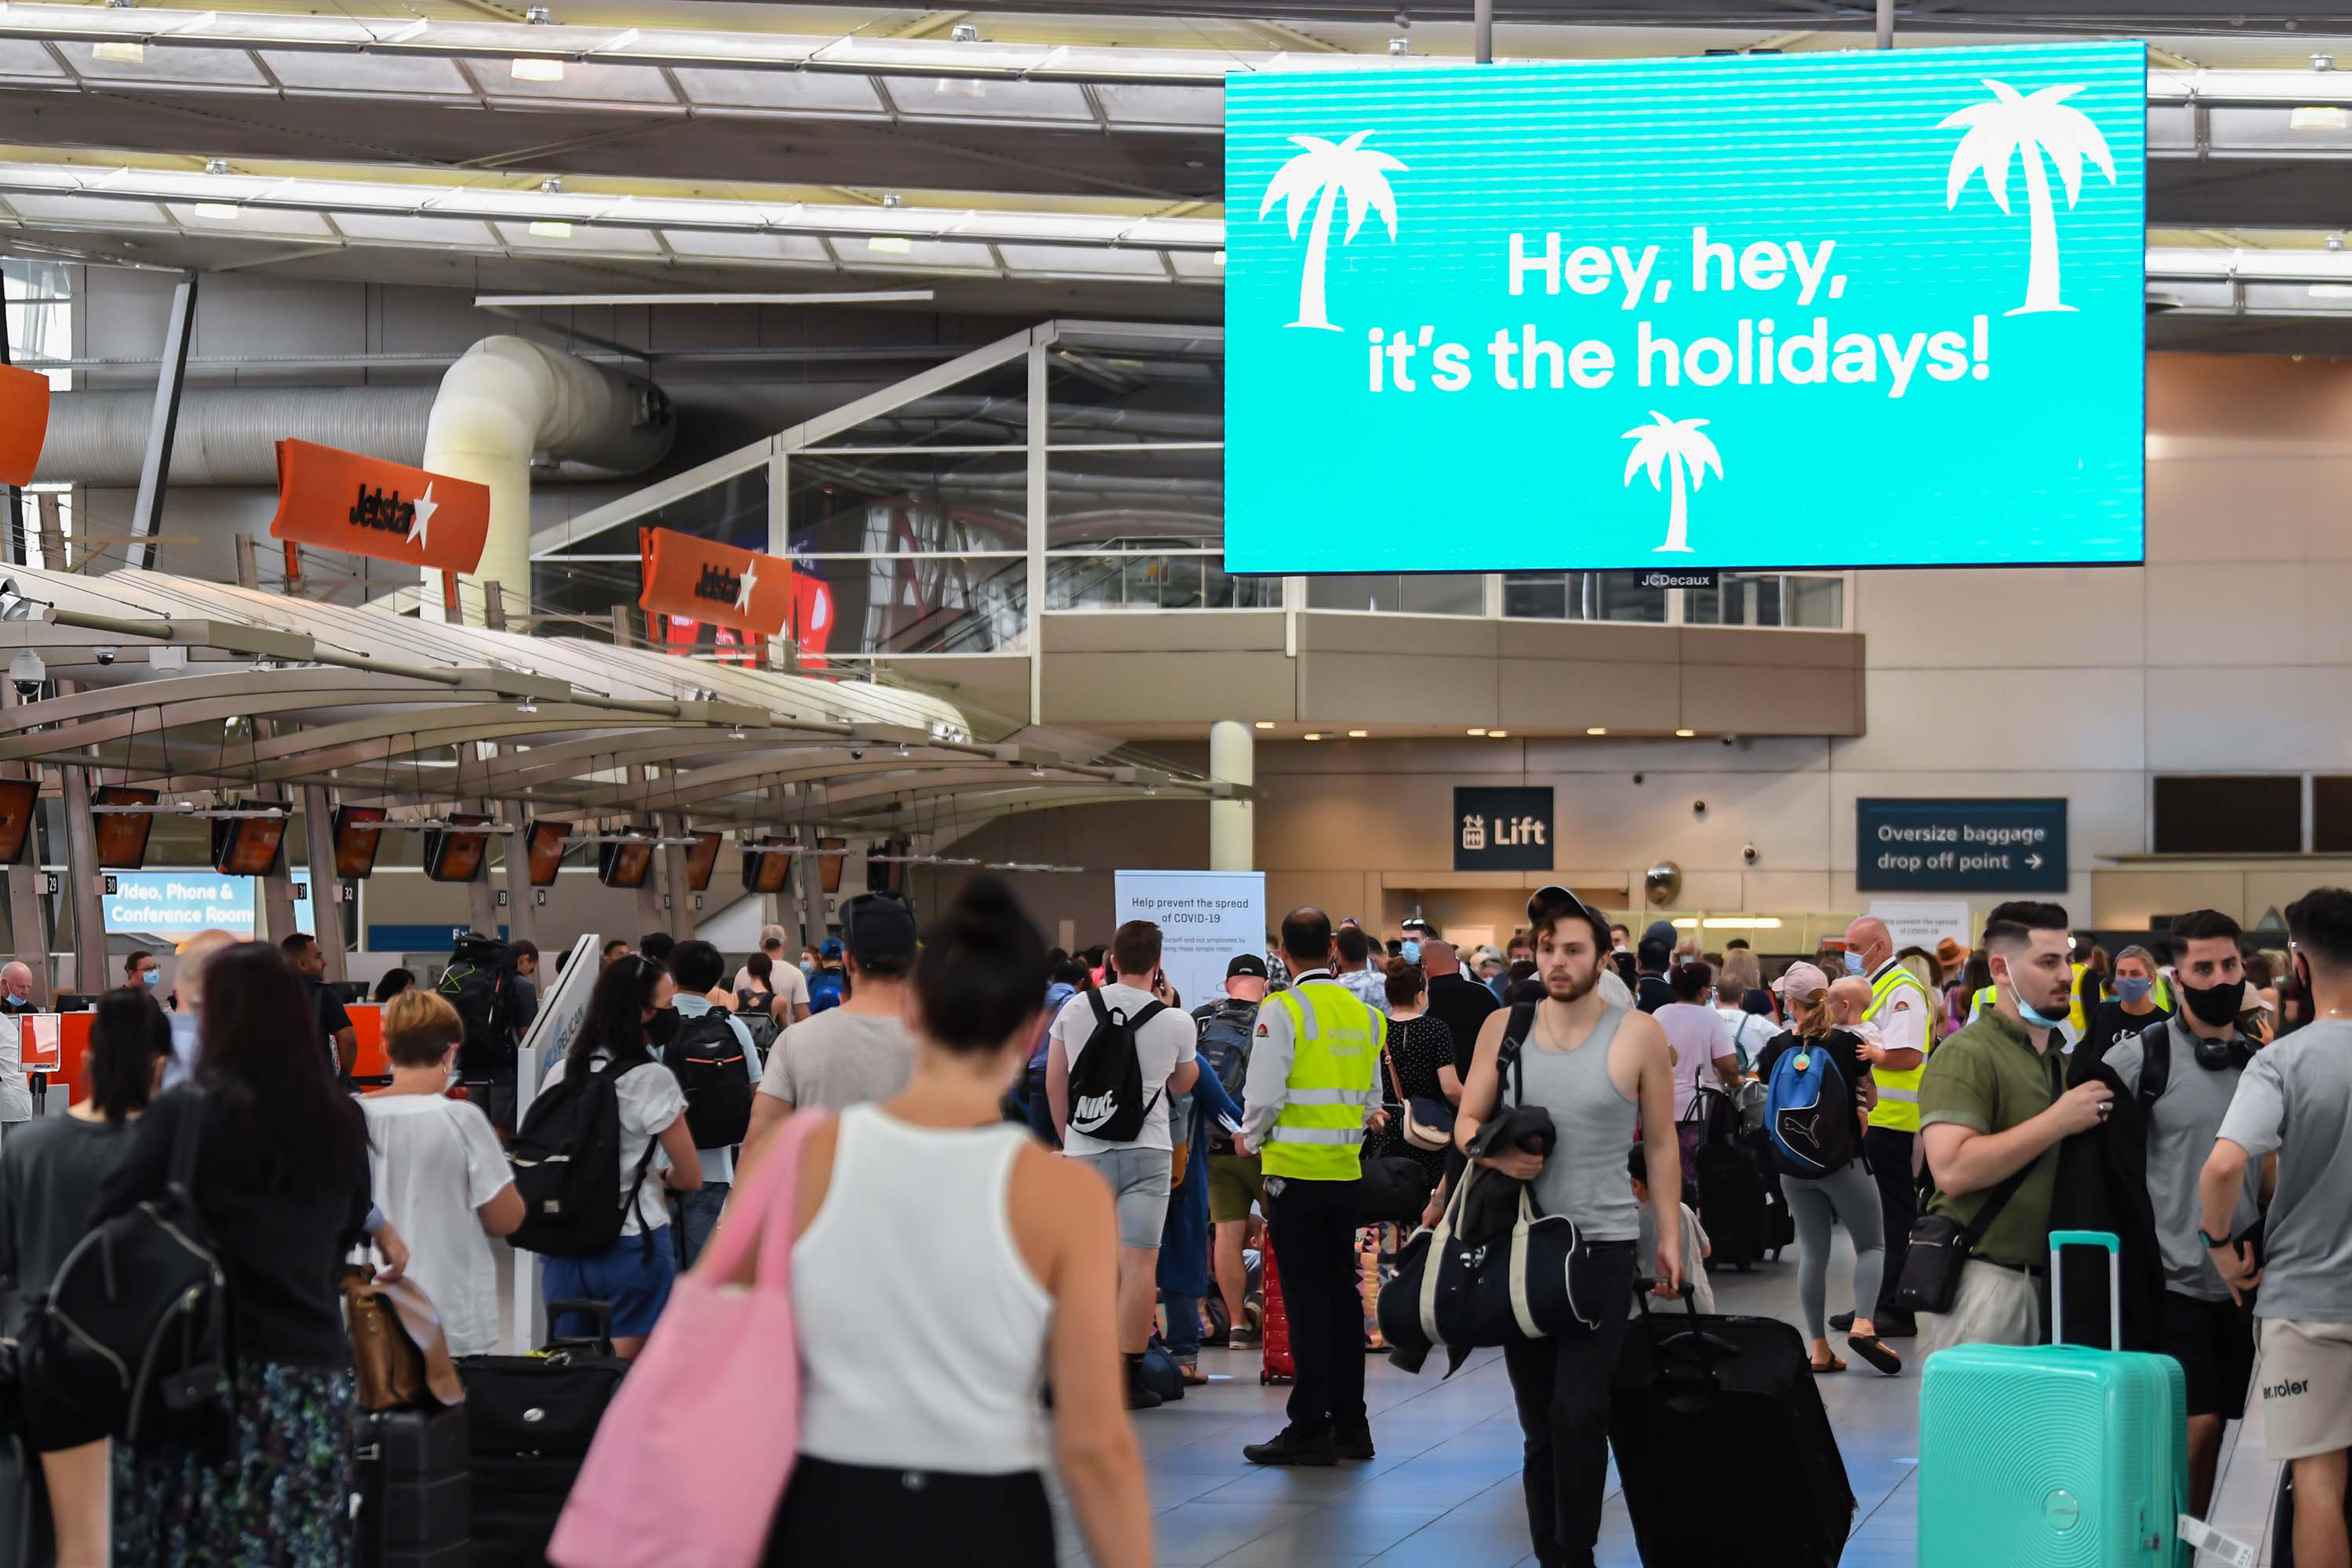 Travelers are seen at Sydney's Kingsford Smith domestic airport on December 18, in Sydney, Australia.